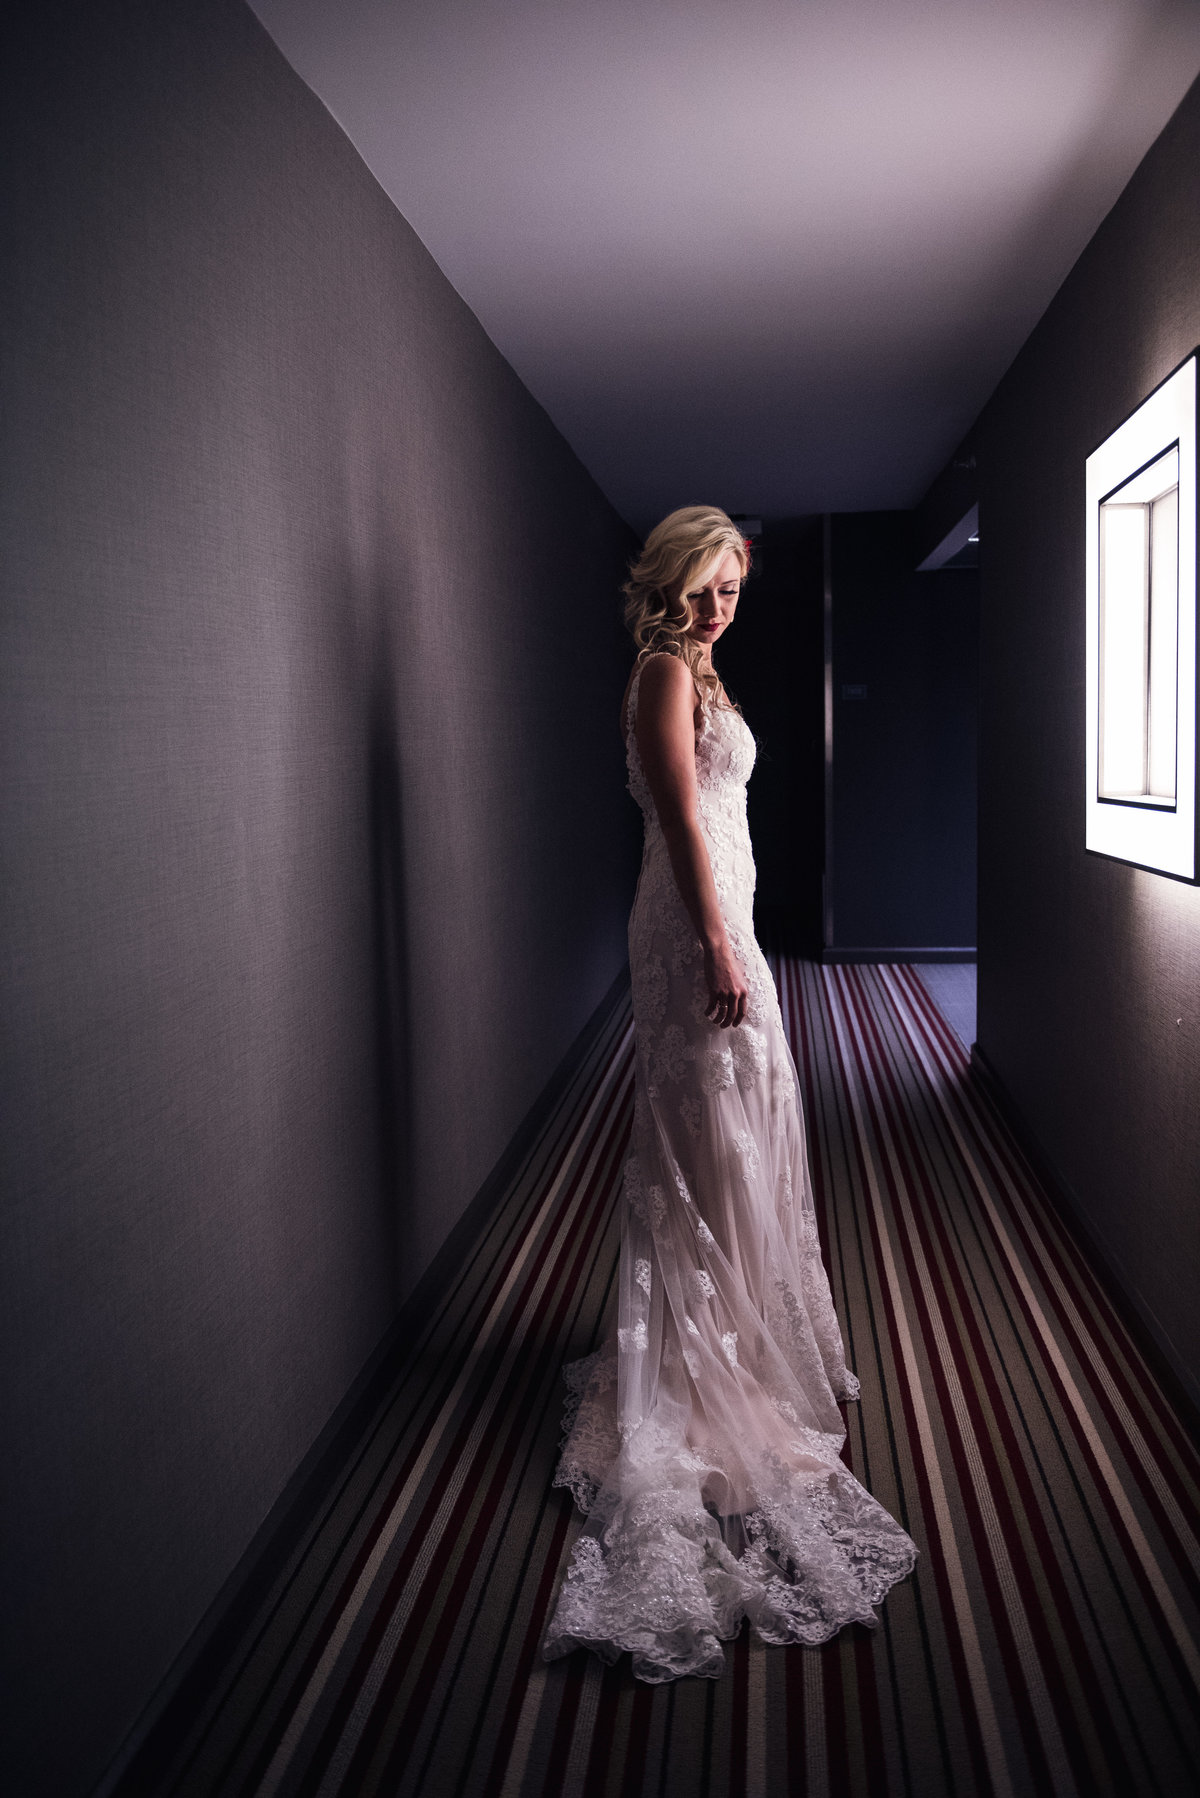 Vinson-Images-Fayetteville-Arkansas-NWA-Wedding-Photographer-hotel-hall